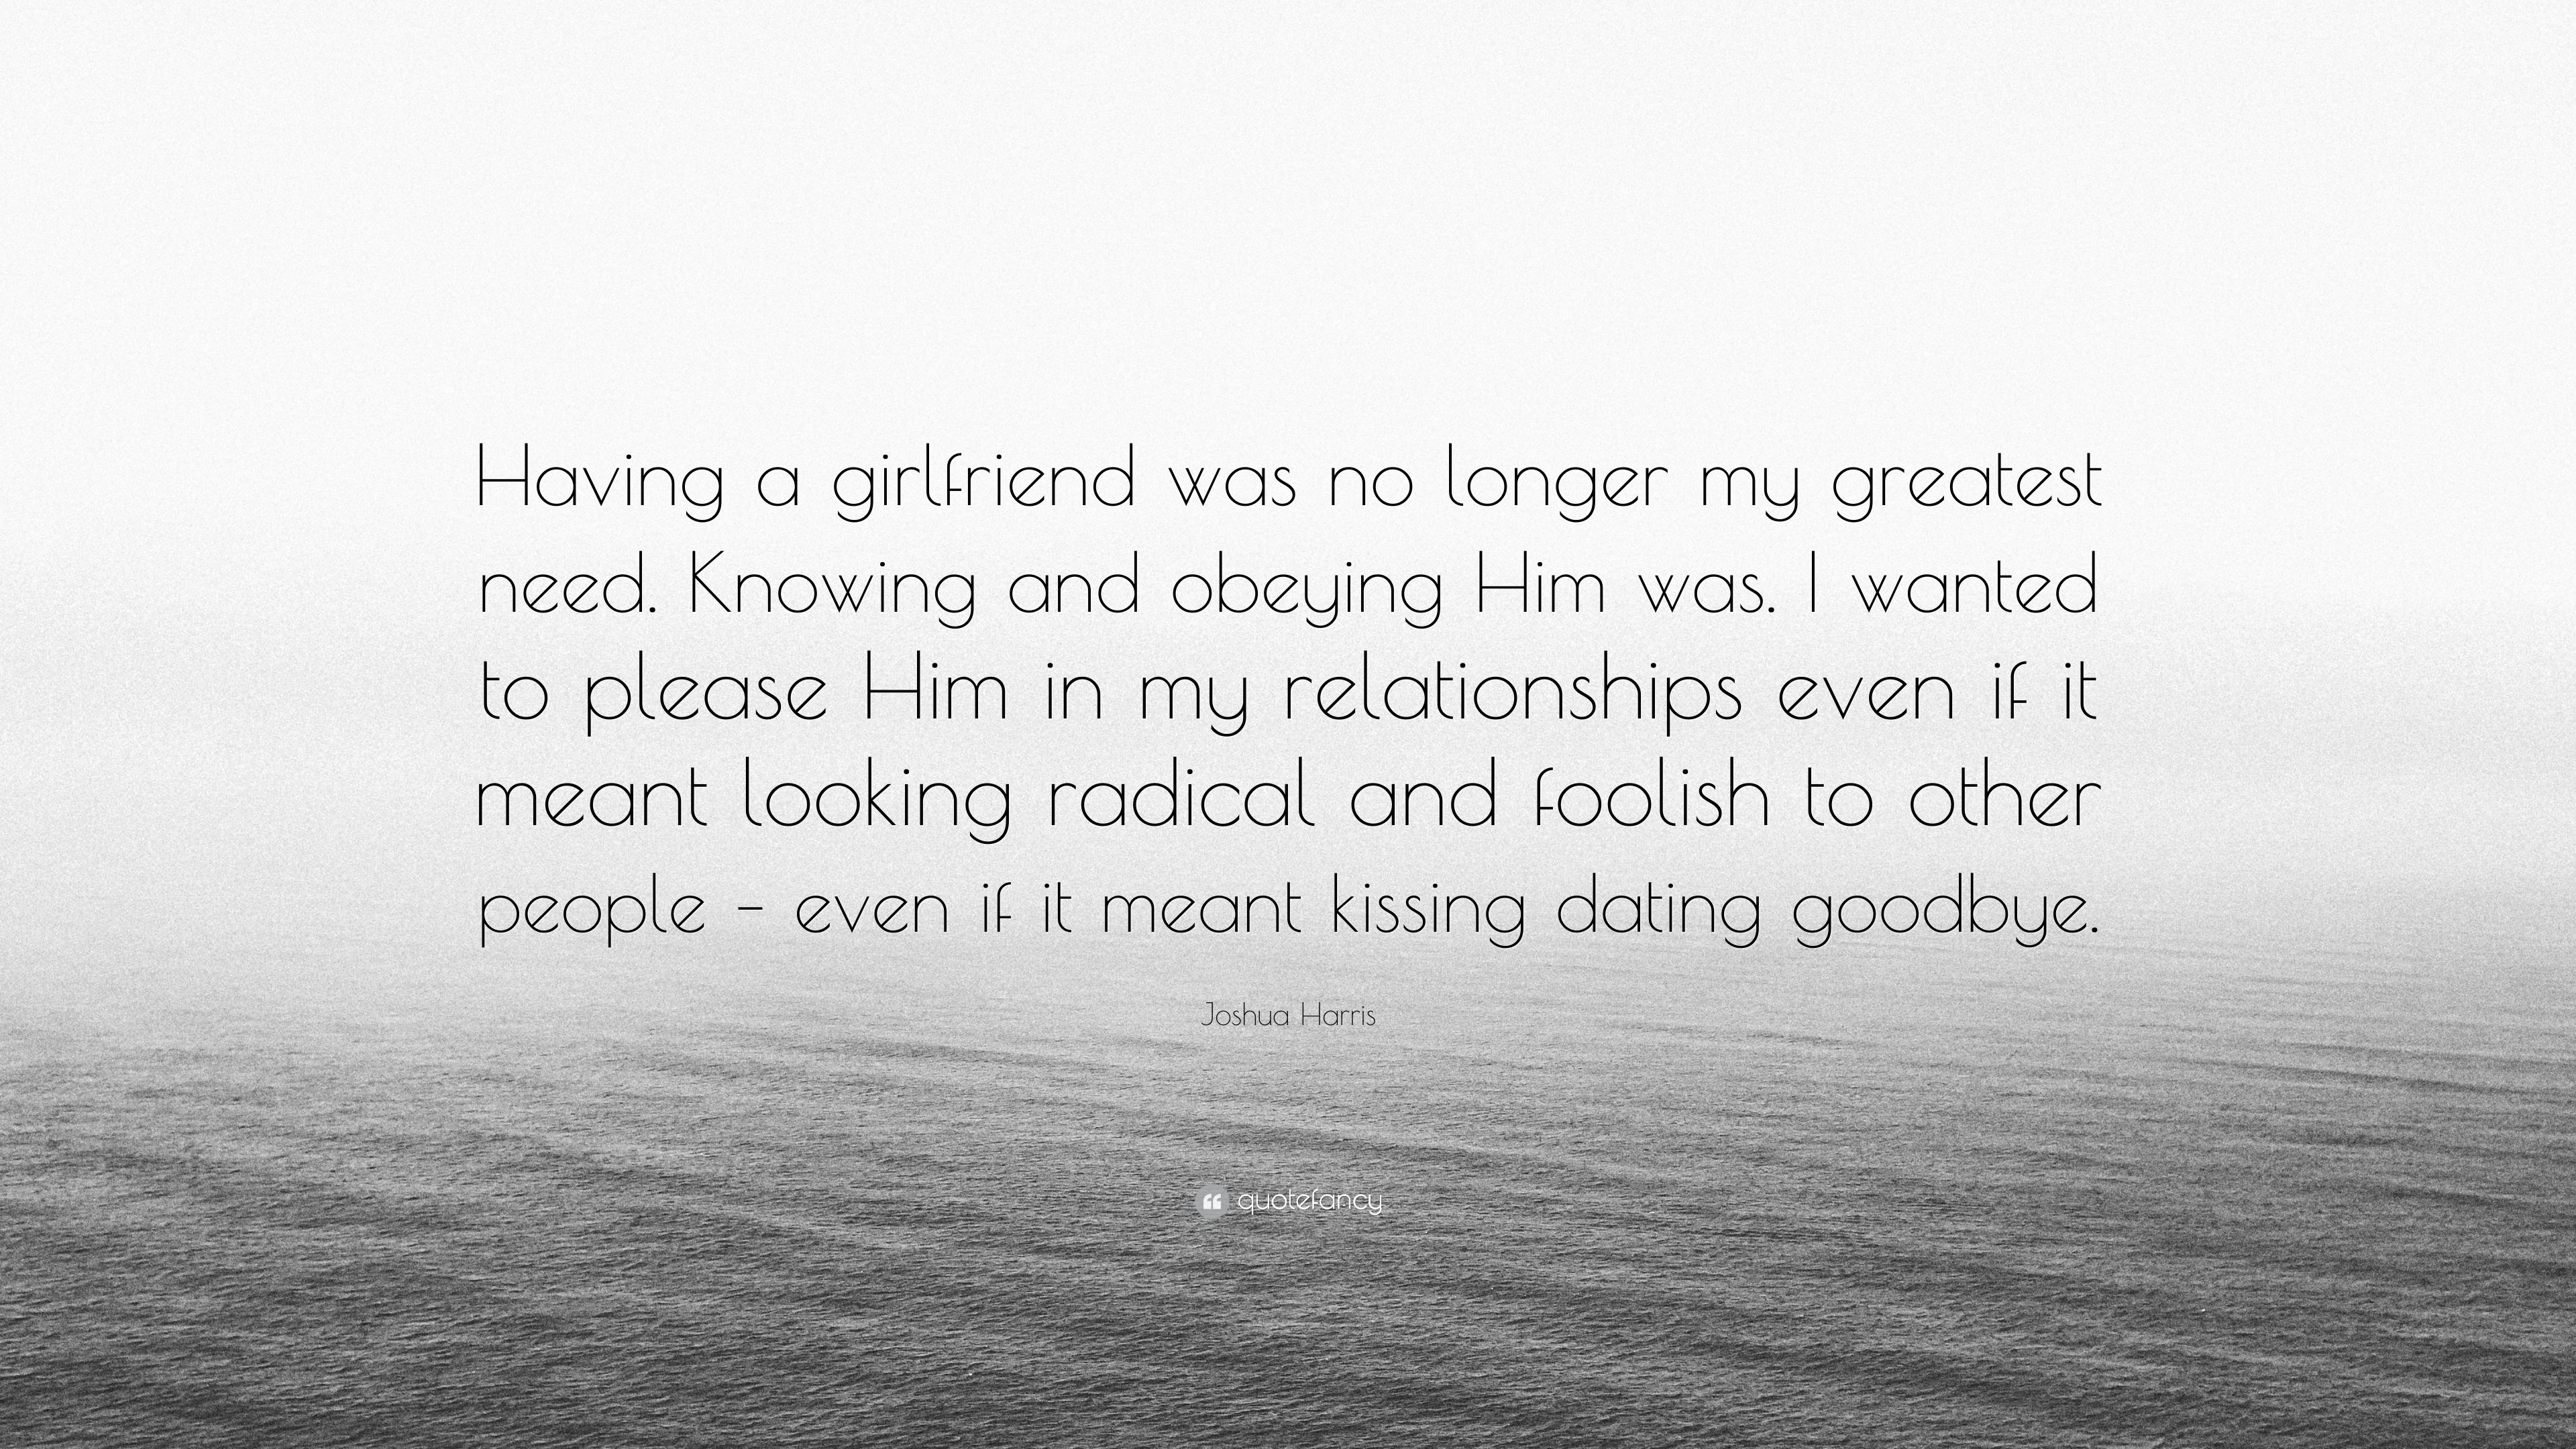 No longer interested in dating him